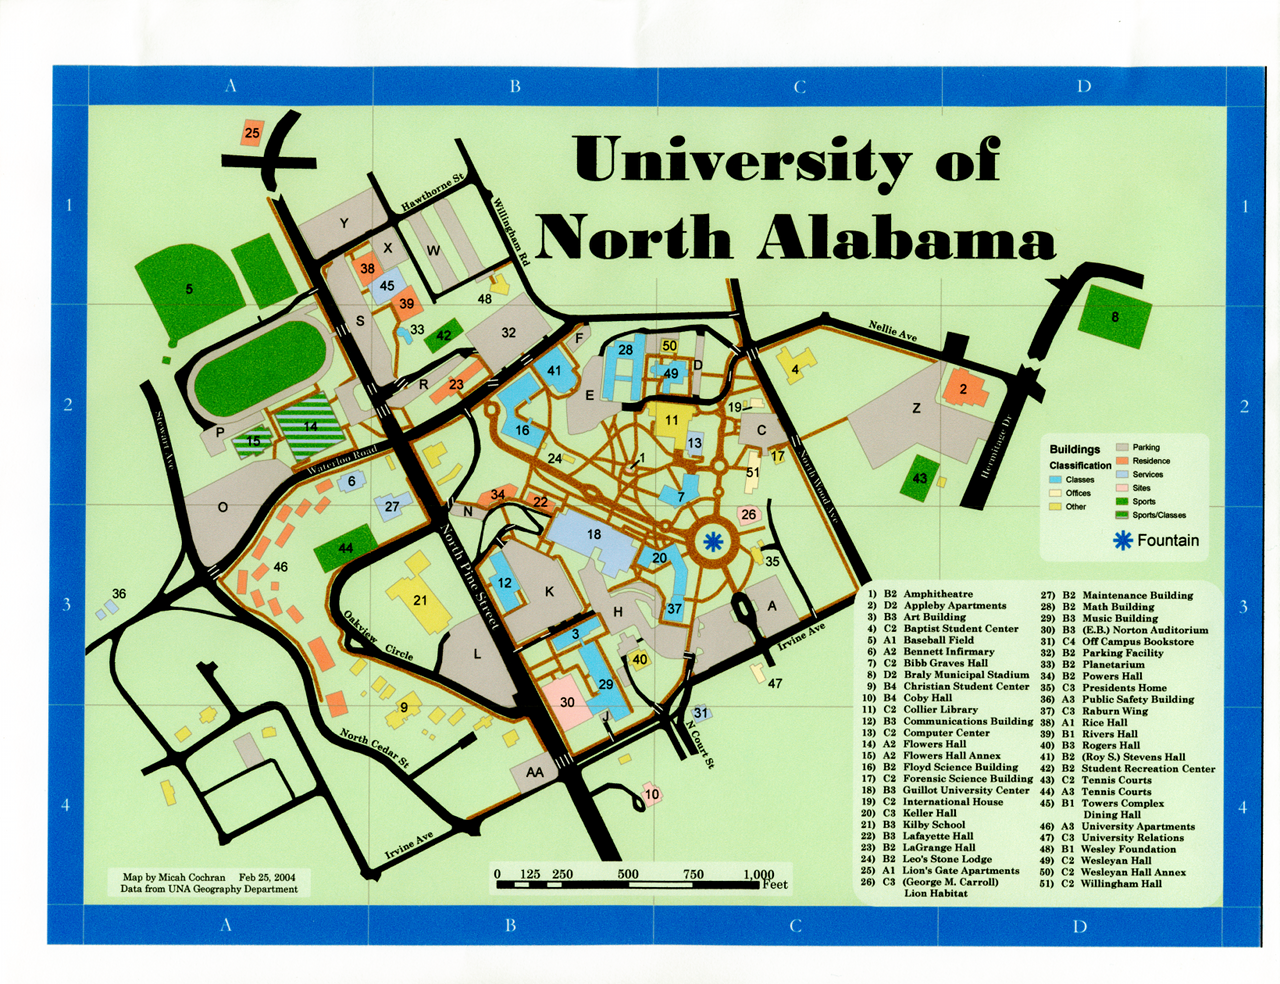 Uga Campus Map With Building Numbers.Una Campus Map Cyndiimenna